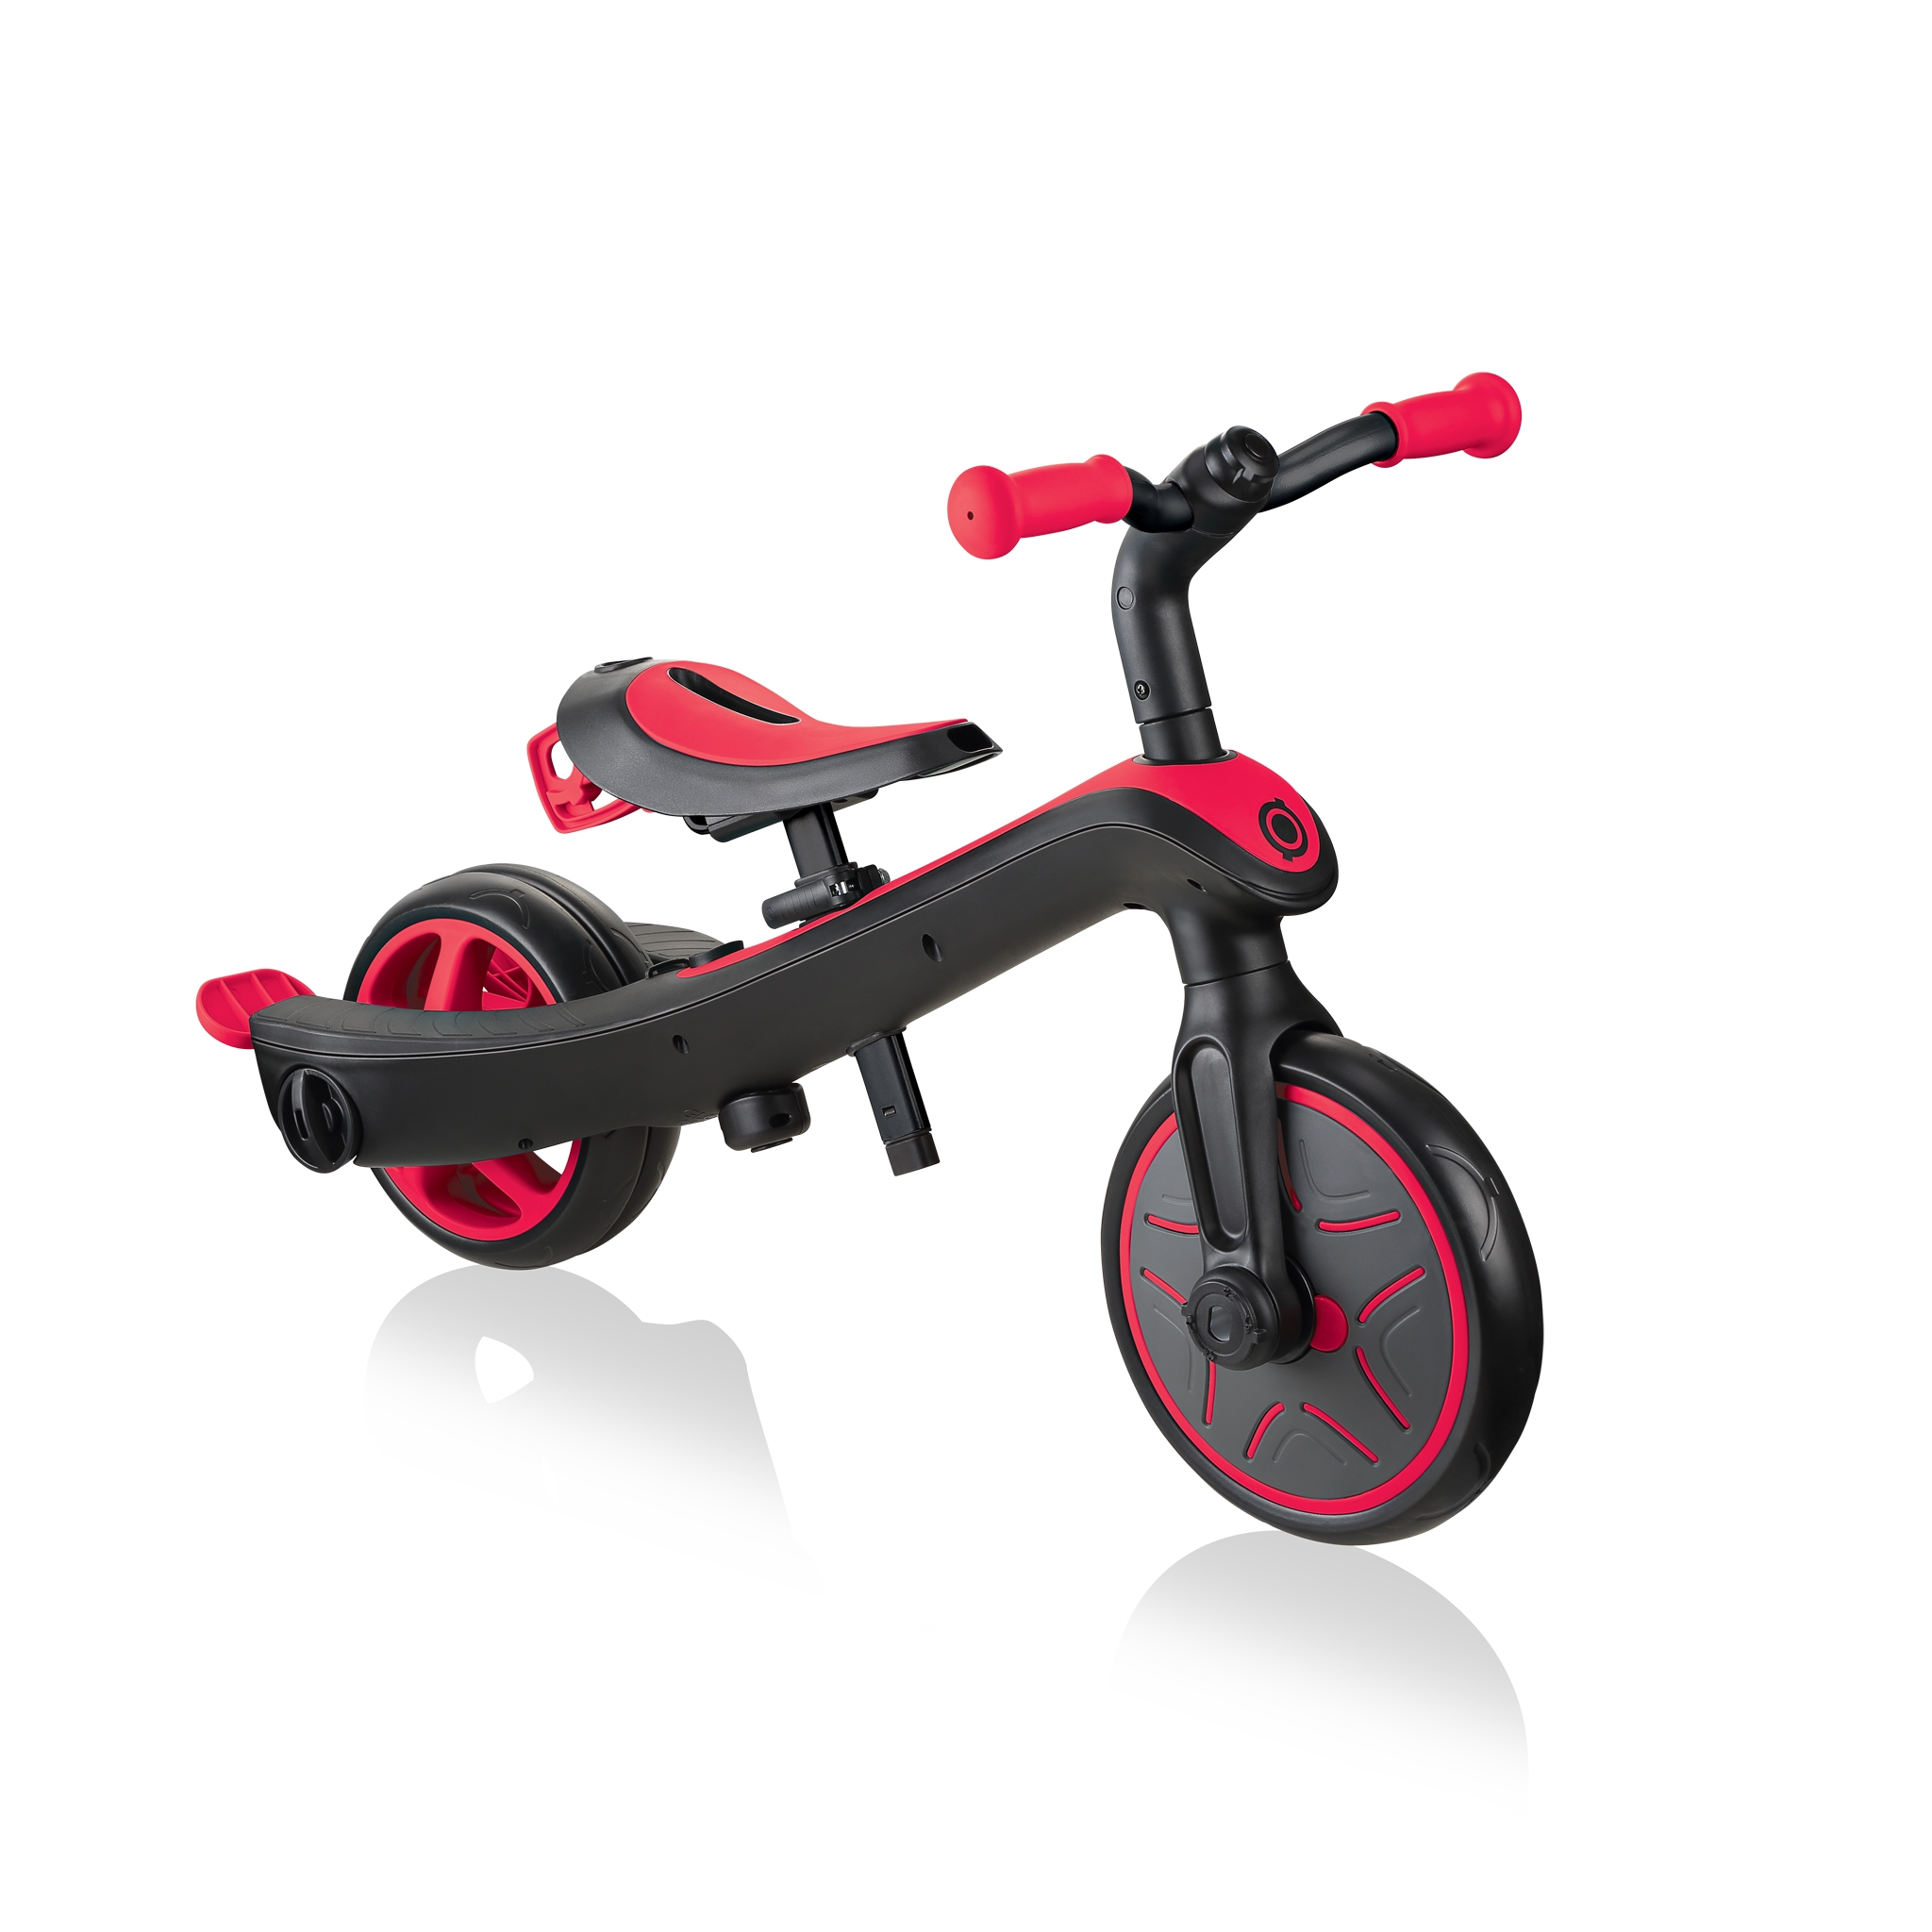 Globber-EXPLORER-TRIKE-3in1-all-in-one-baby-tricycle-and-kids-balance-bike-stage-2-balance-bike_new-red